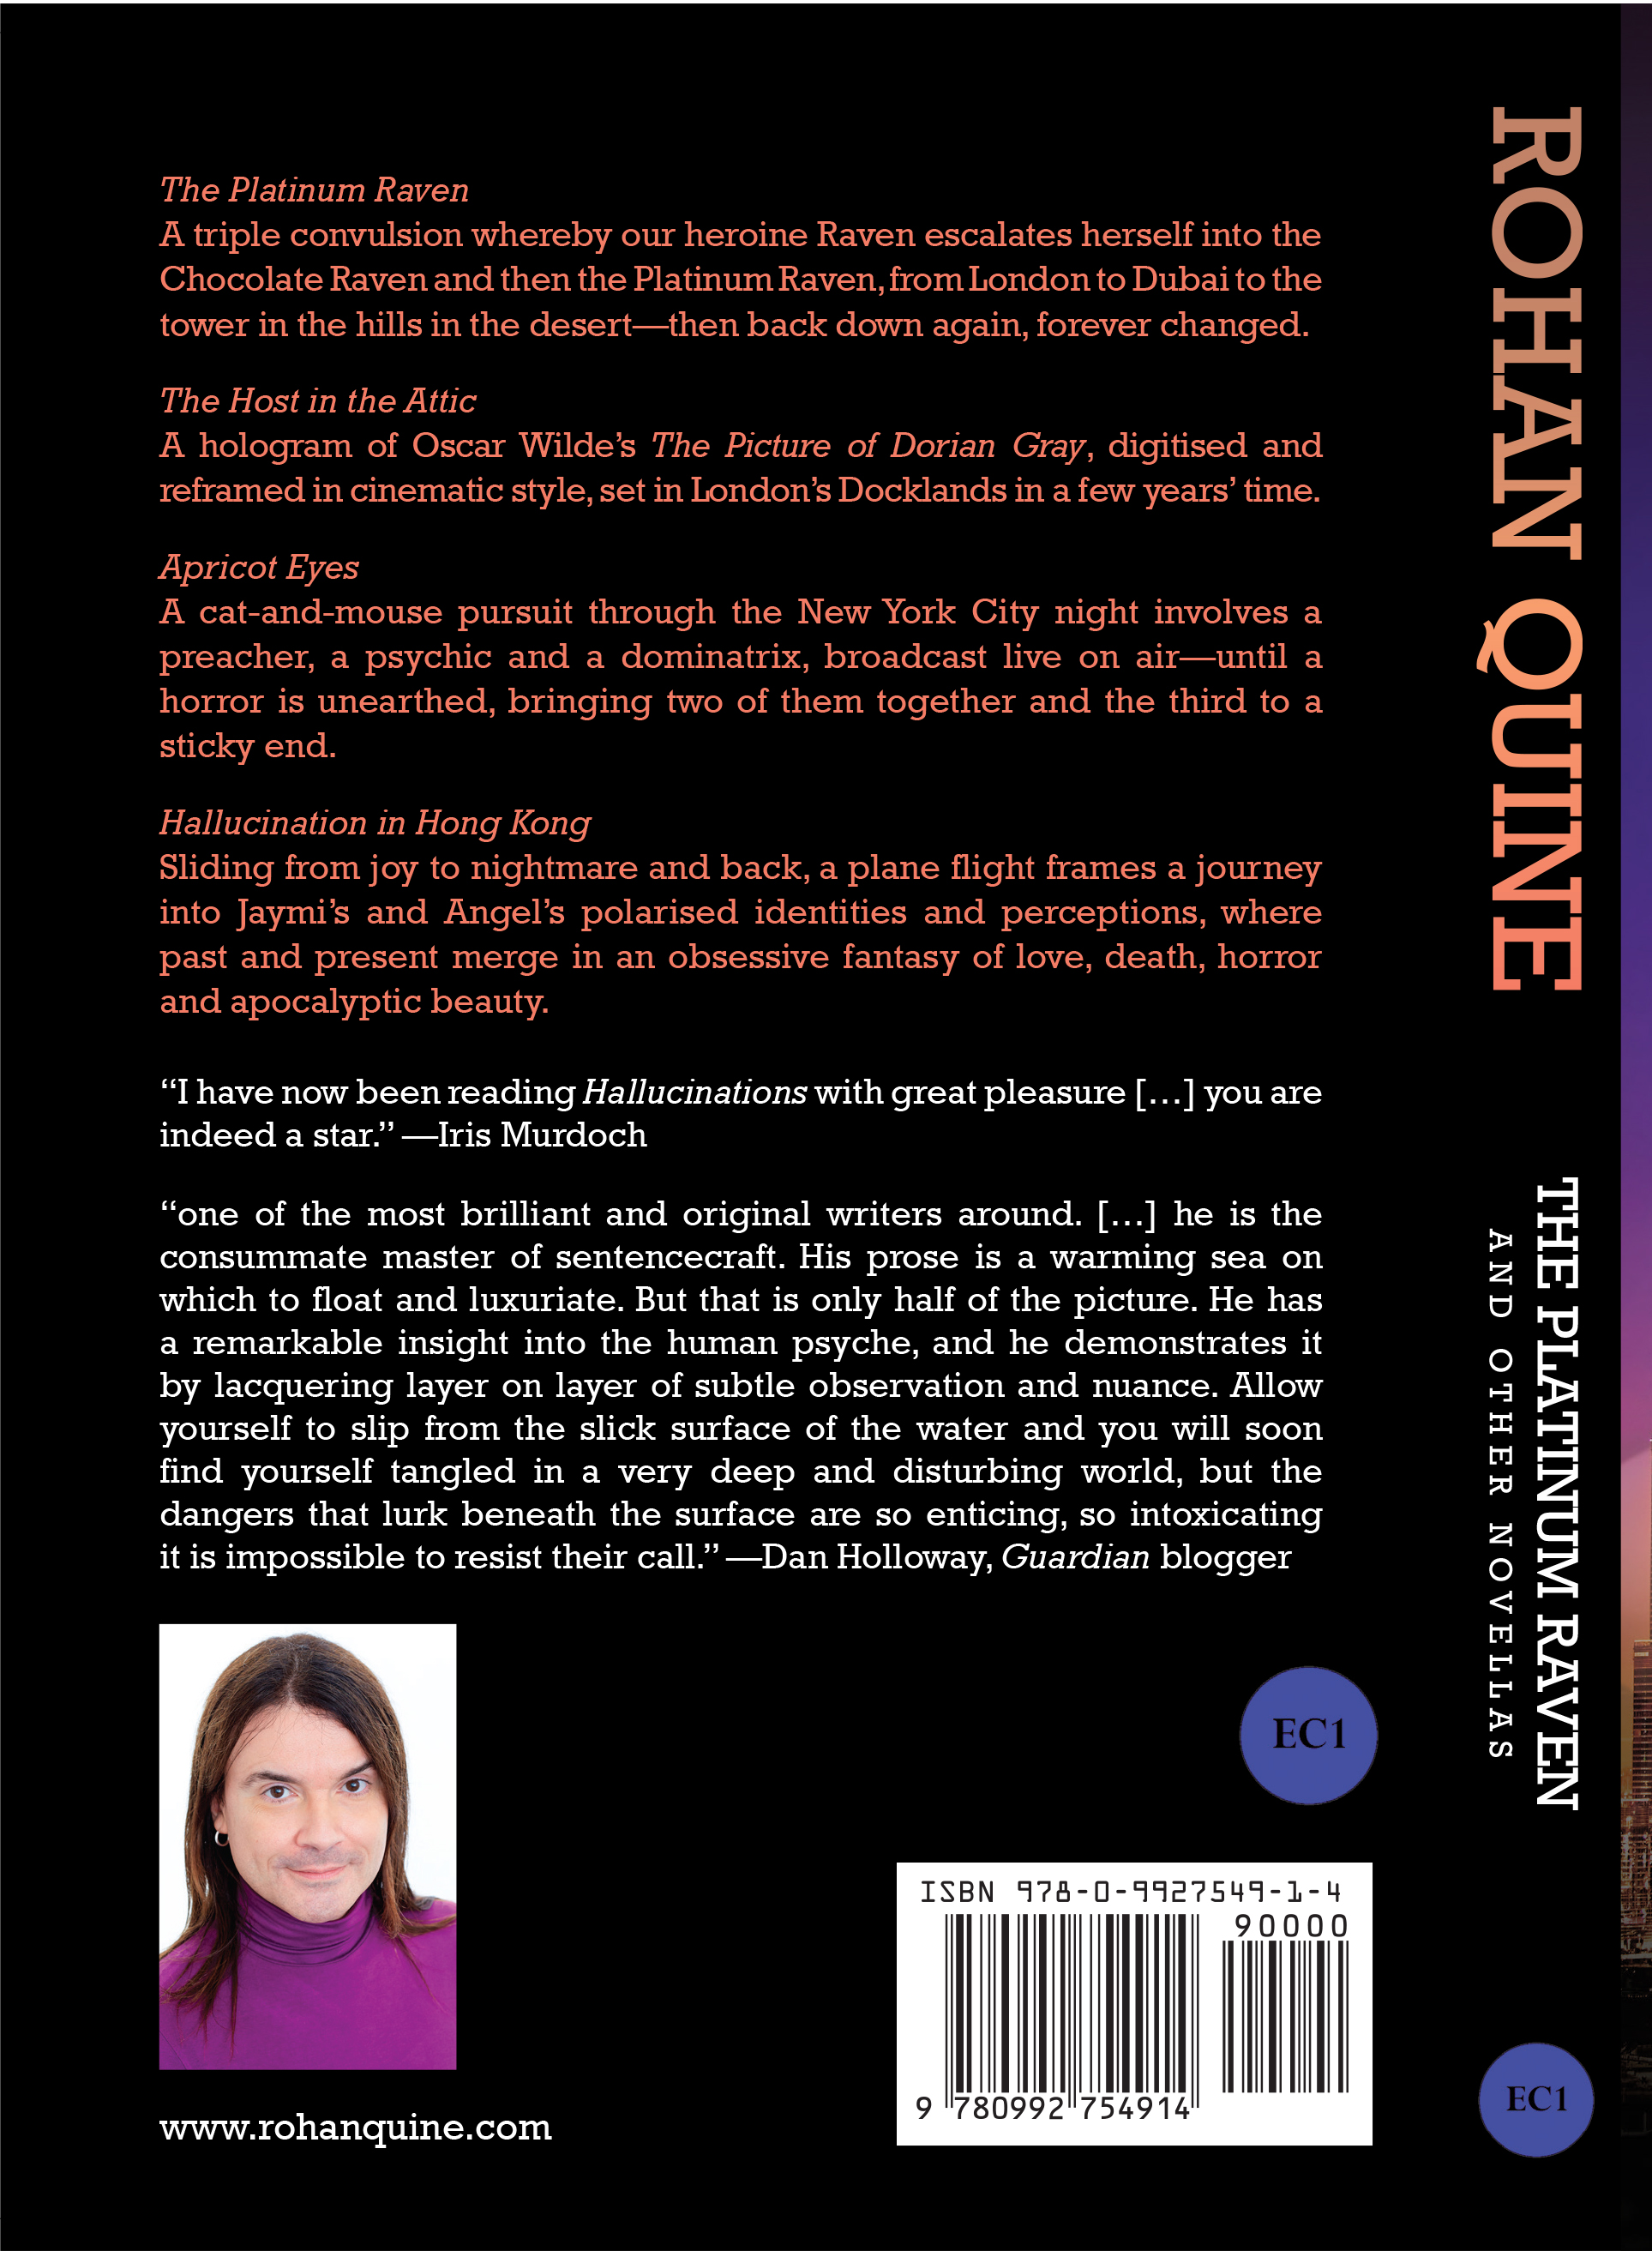 Rohan Quine - The Platinum Raven and other novellas - paperback back cover (literary fiction, magical realism, horror)